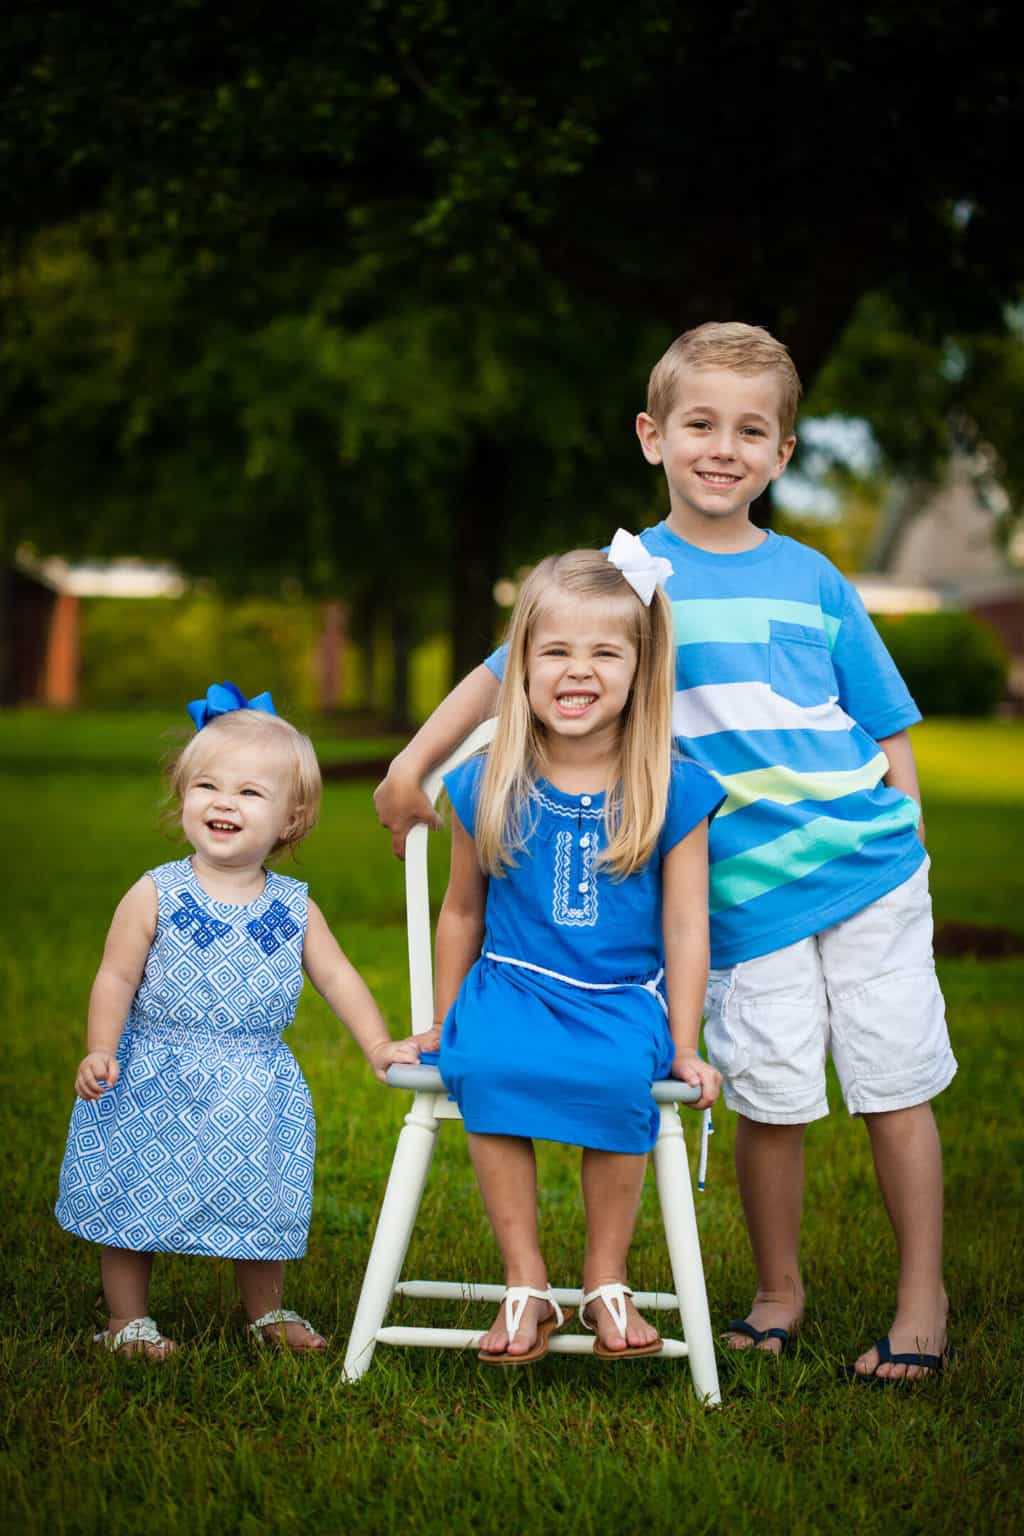 Best Summer Sibling Photo Ideas - What to Wear and More!